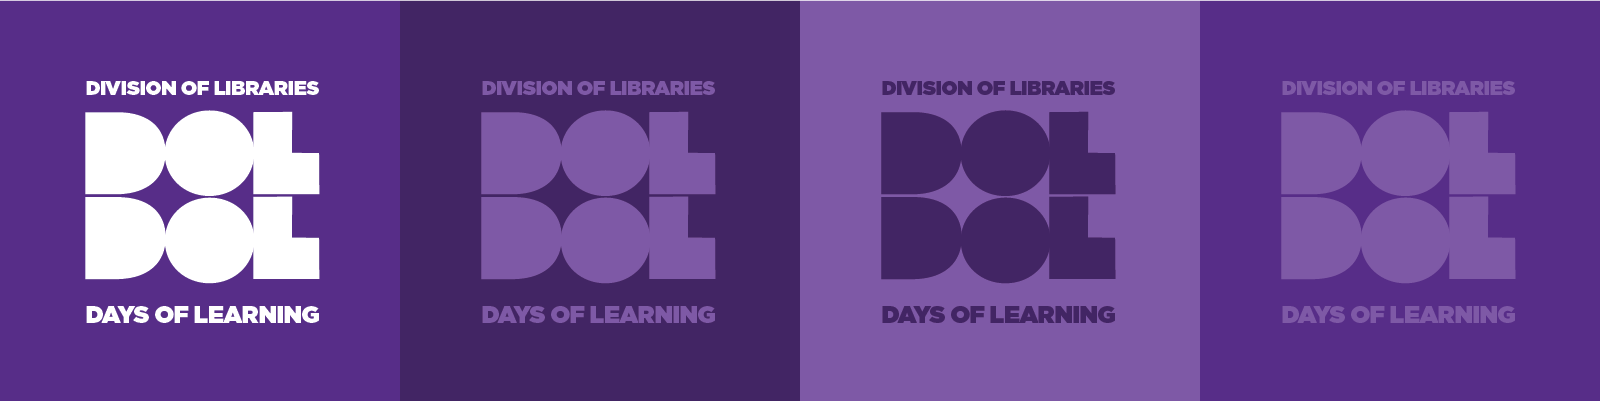 Division of Libraries Days of Learning logo.